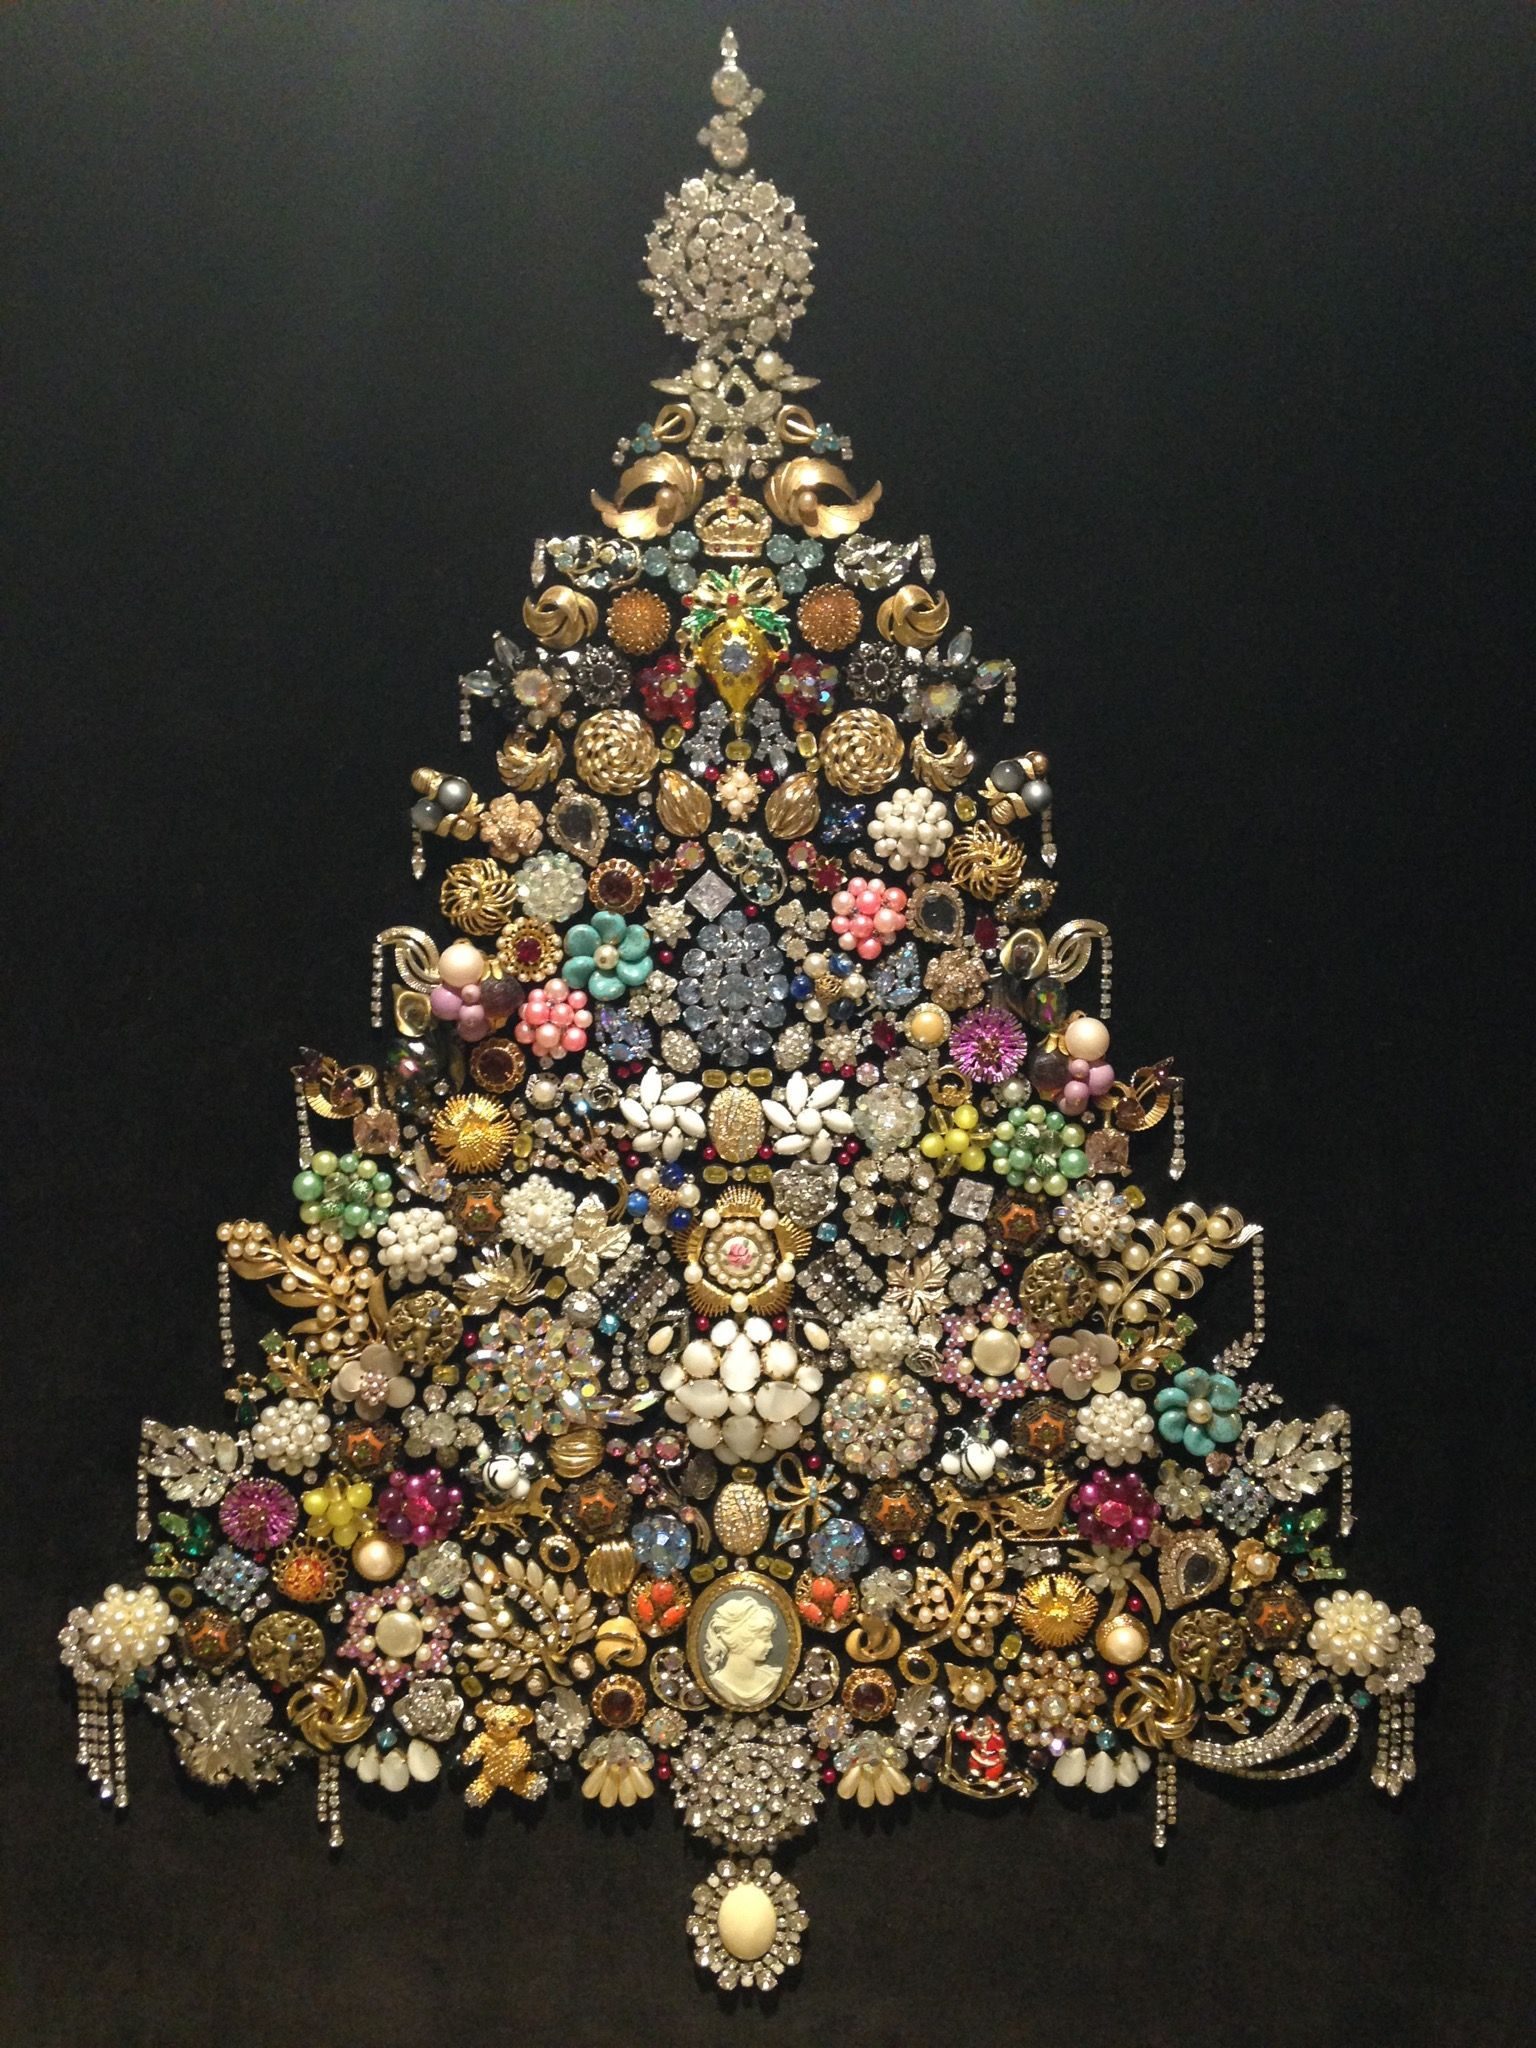 Vintage Jewelry Art In 2020 Jeweled Christmas Trees Jewelry Christmas Tree Jeweled Christmas